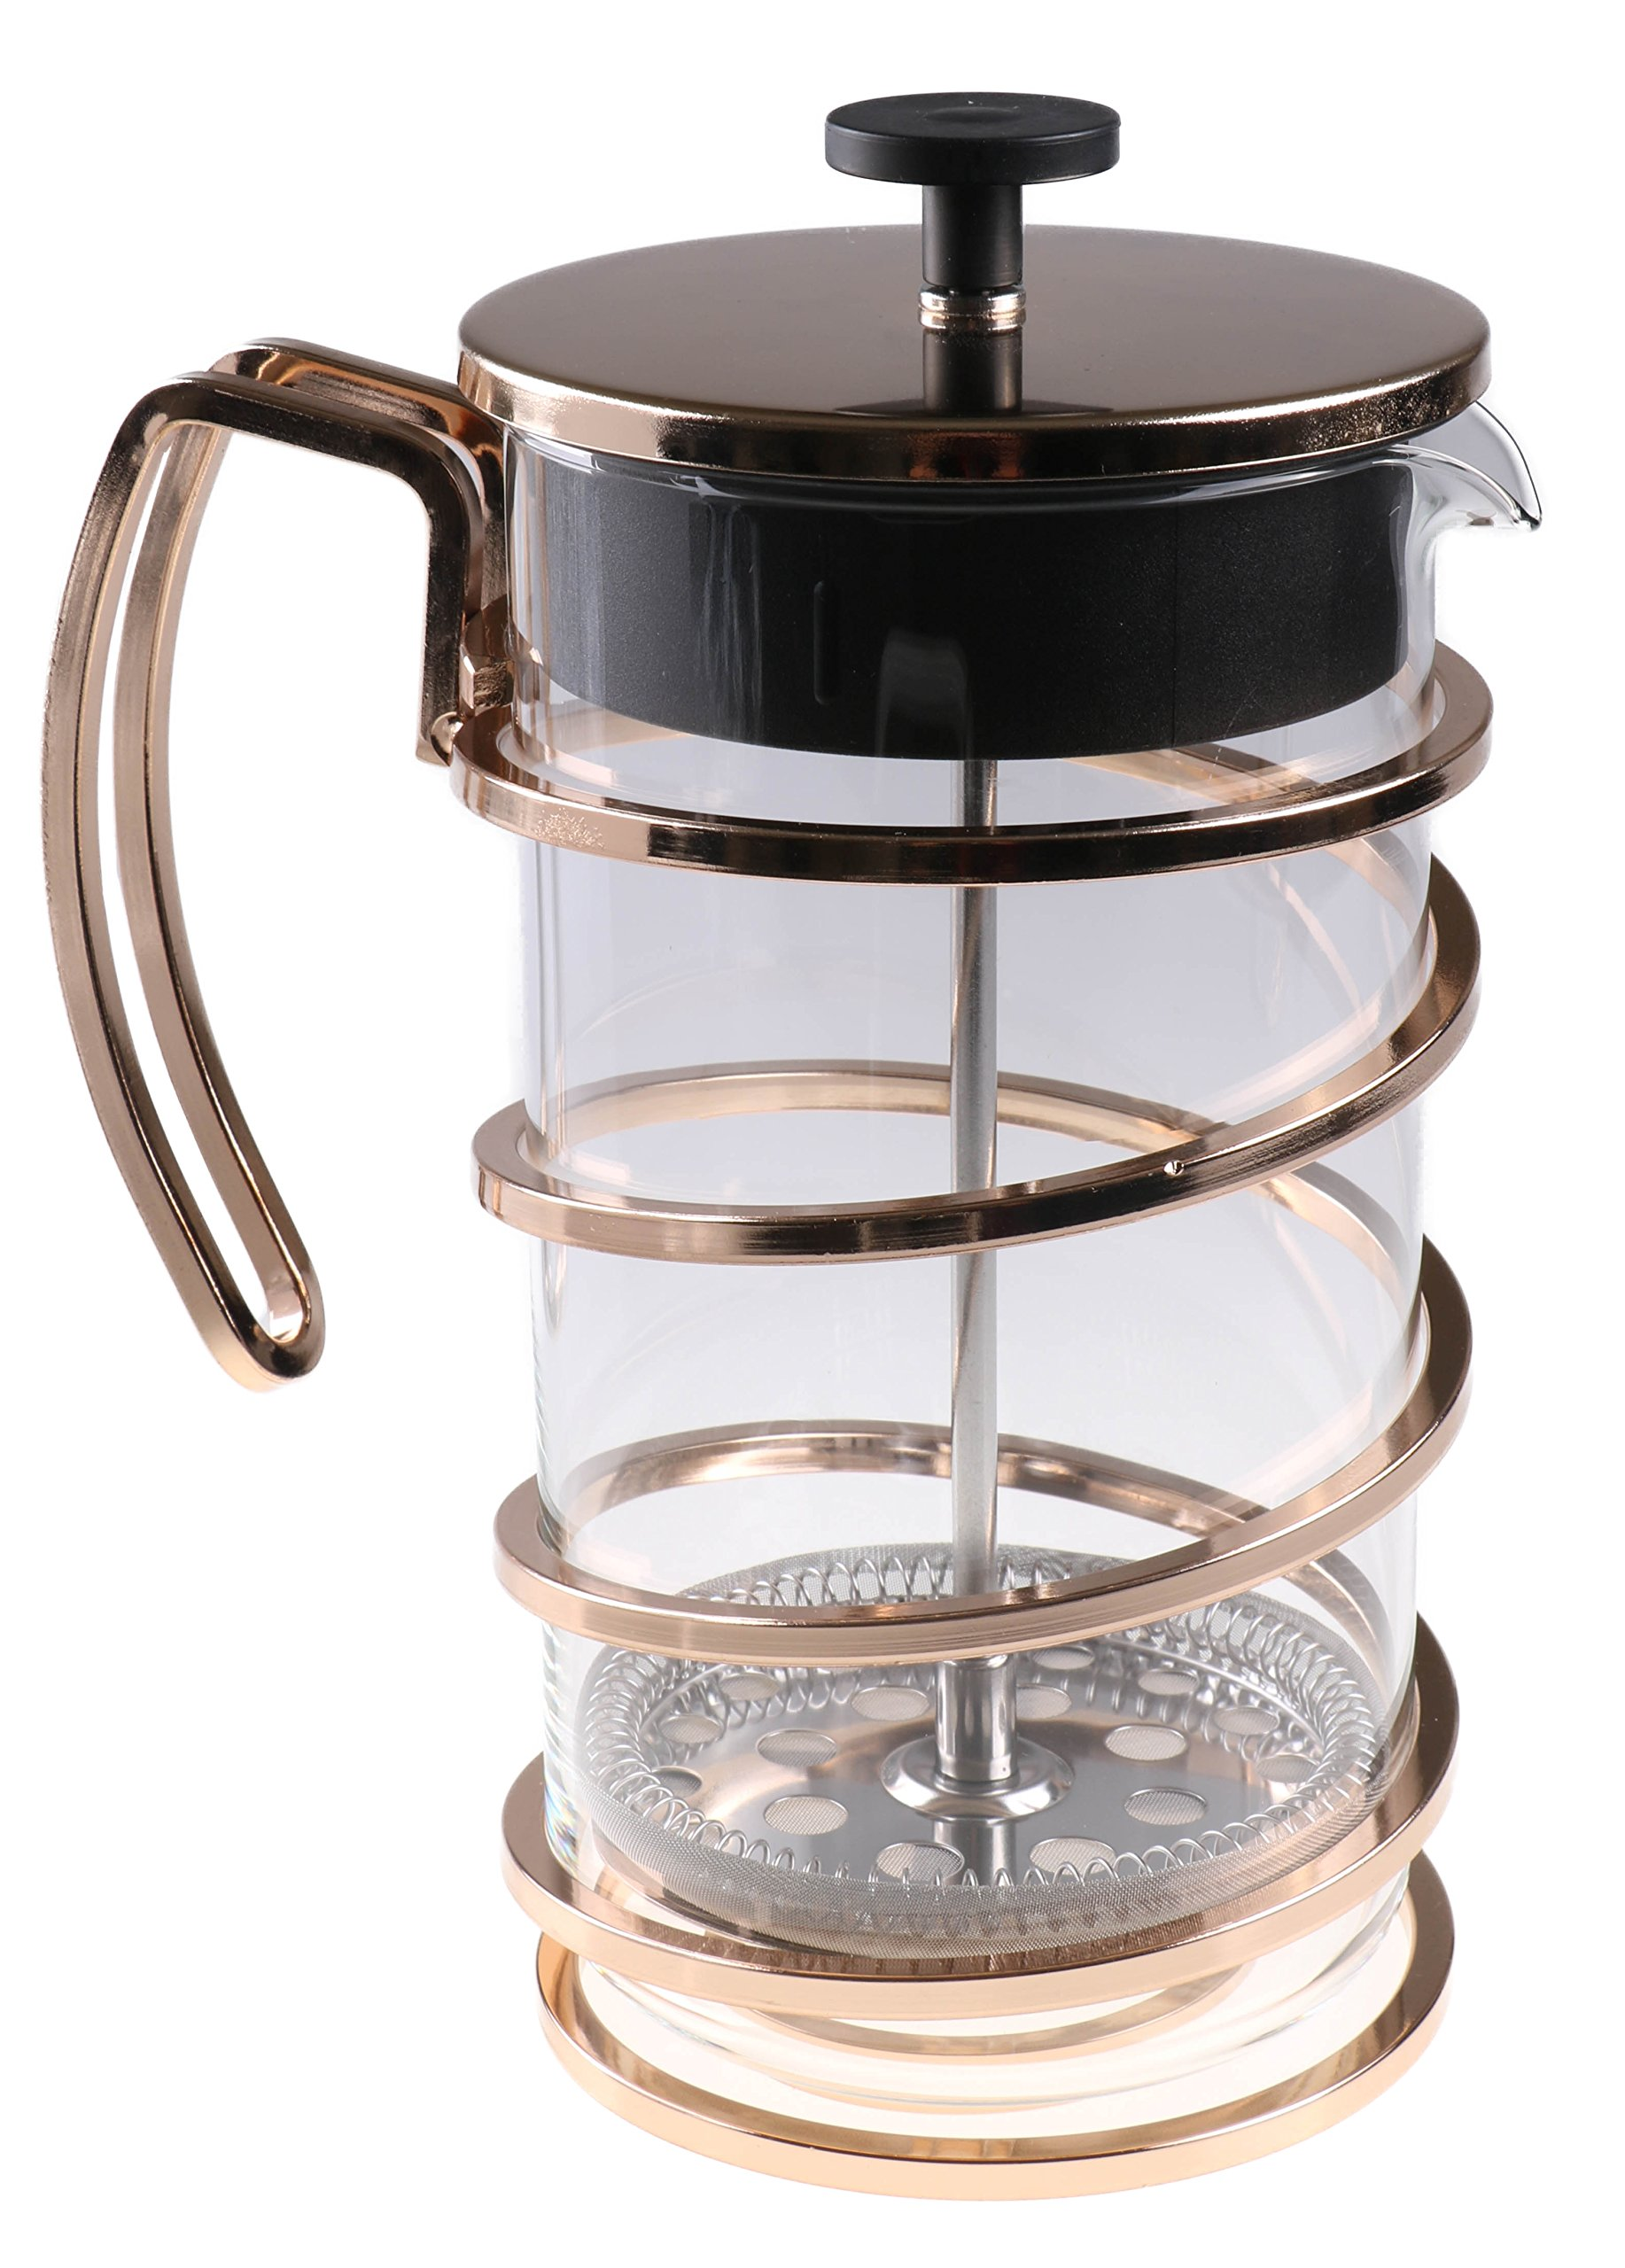 Gold 1 Liter French Press Coffee Maker by Clever Chef | Large French Press Perfect for Morning Coffee | Maximum Flavor Coffee Brewer With Superior Filtration | 4 Cup Capacity (33.85 fl oz/1 liter)